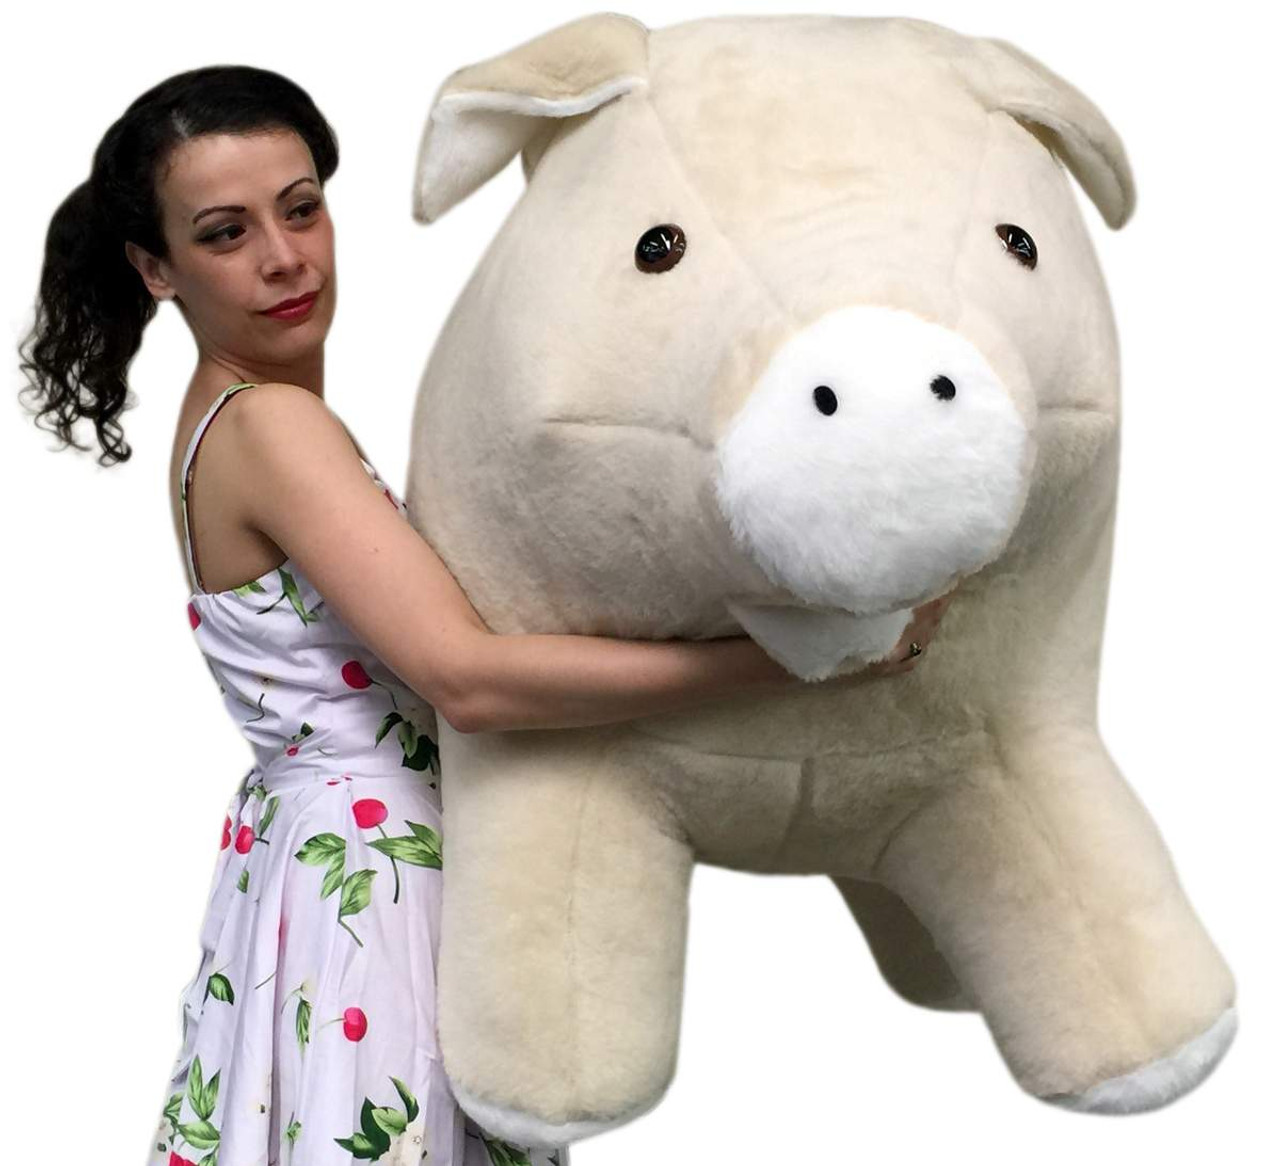 American Made Giant Stuffed Pig 40 Inch Brown Soft Plush Hog Made In